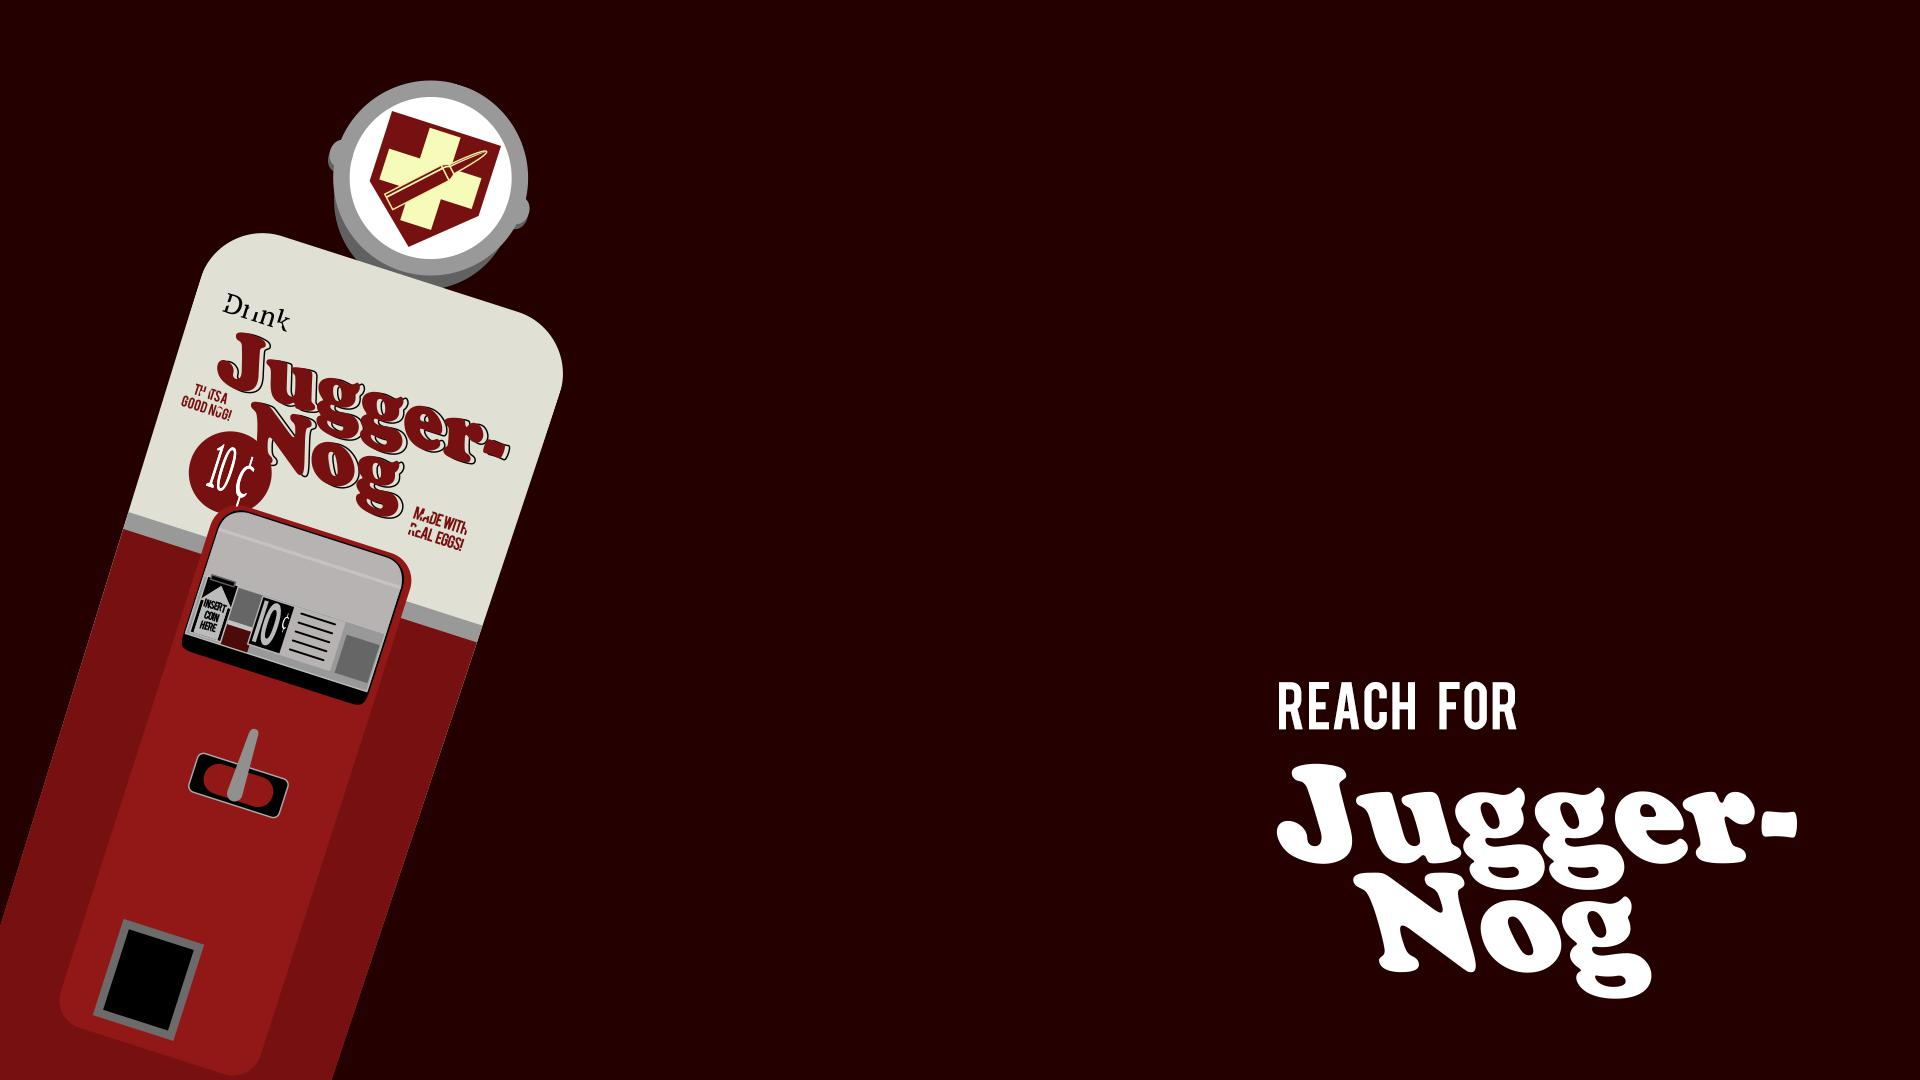 As I re is the Juggernog Wallpaper Thanks to those 1920x1080